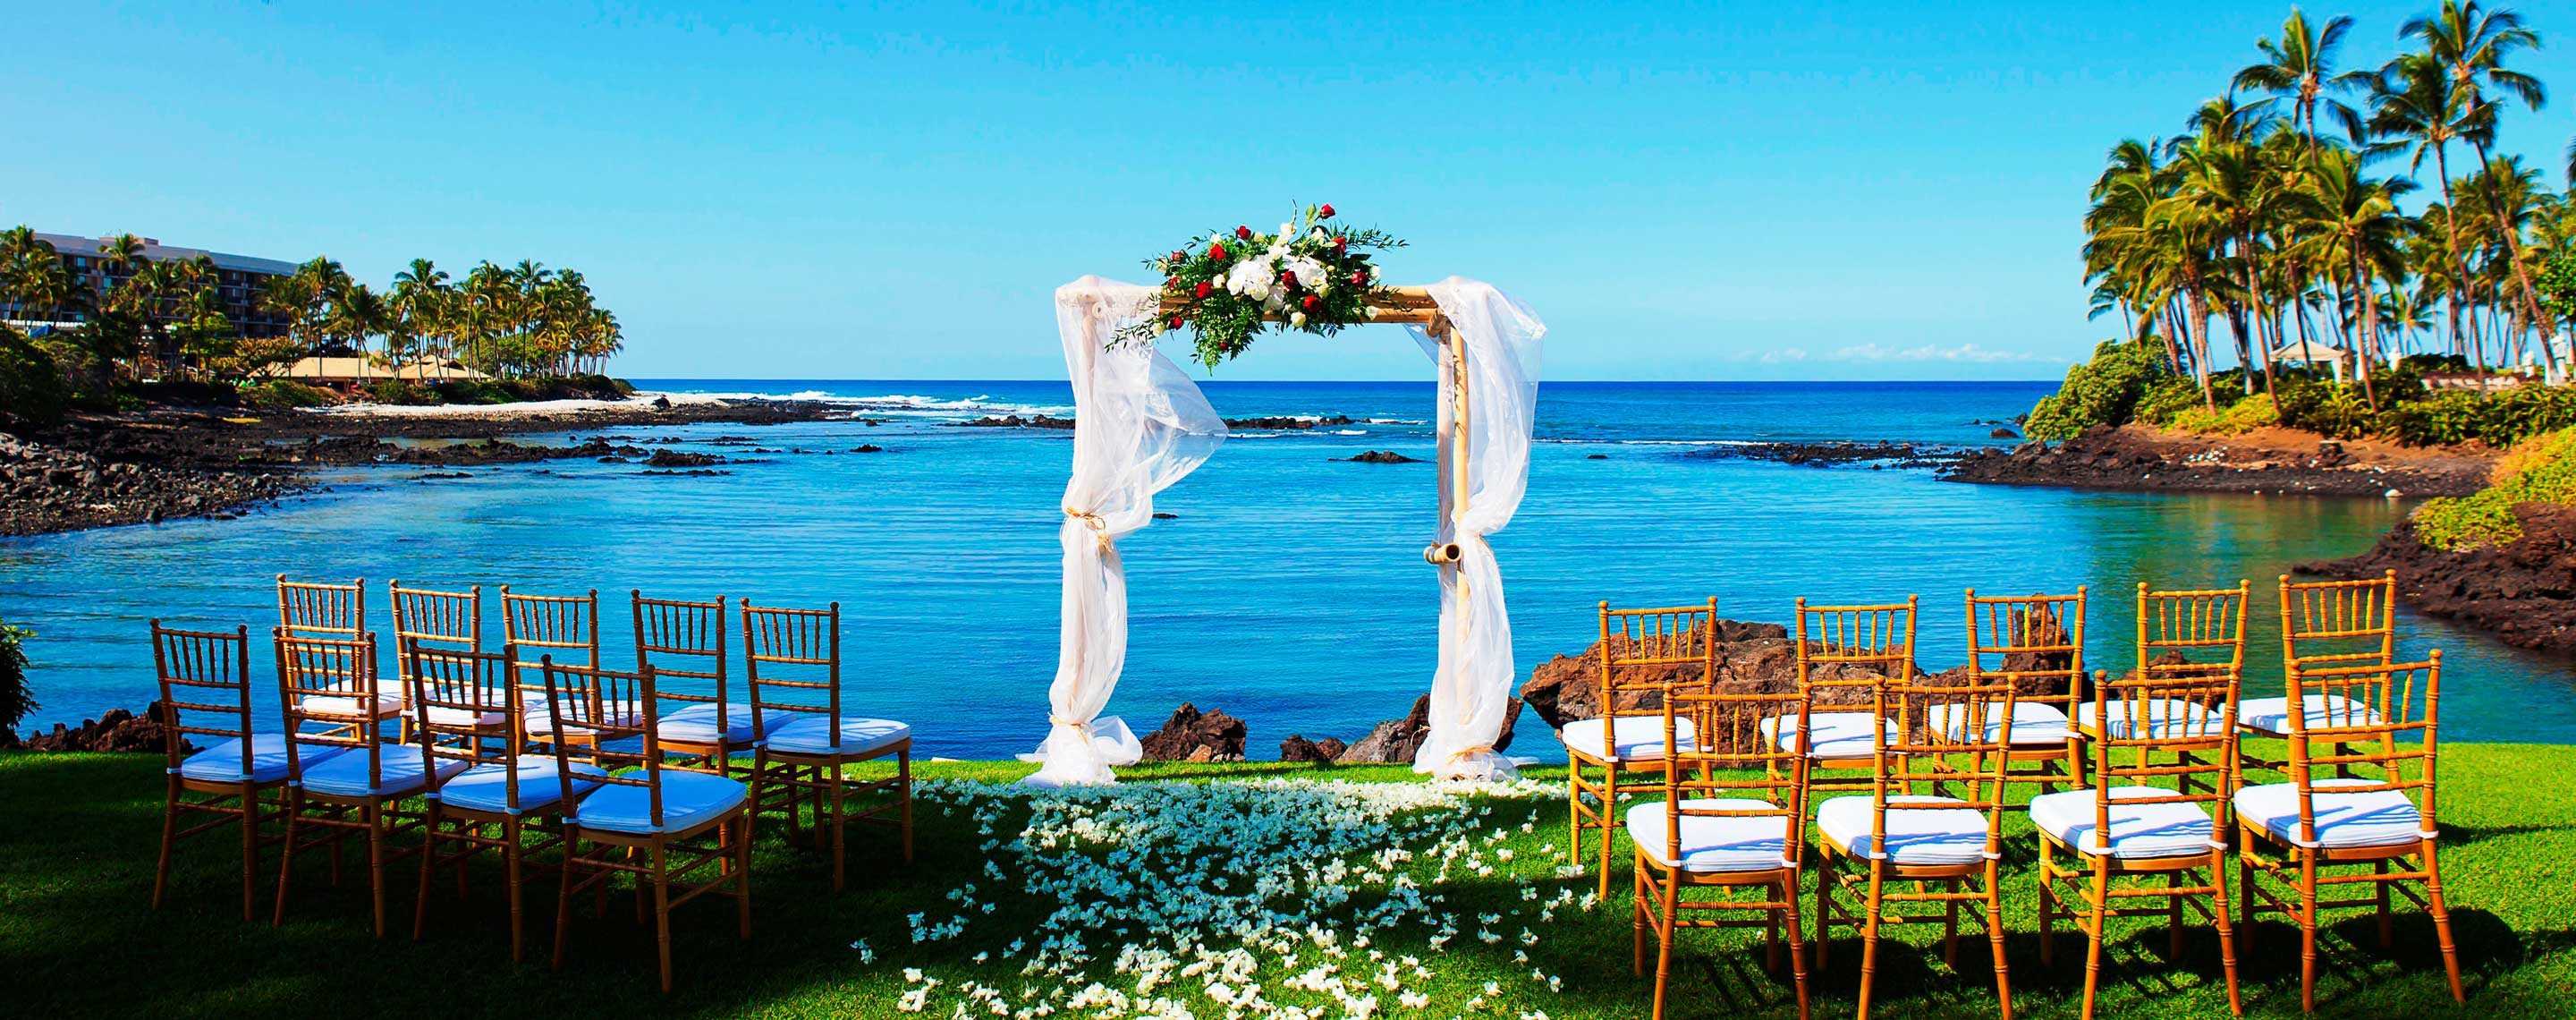 Hawaii Wedding Packages.Hawaii Wedding Packages At Hilton Waikoloa Village